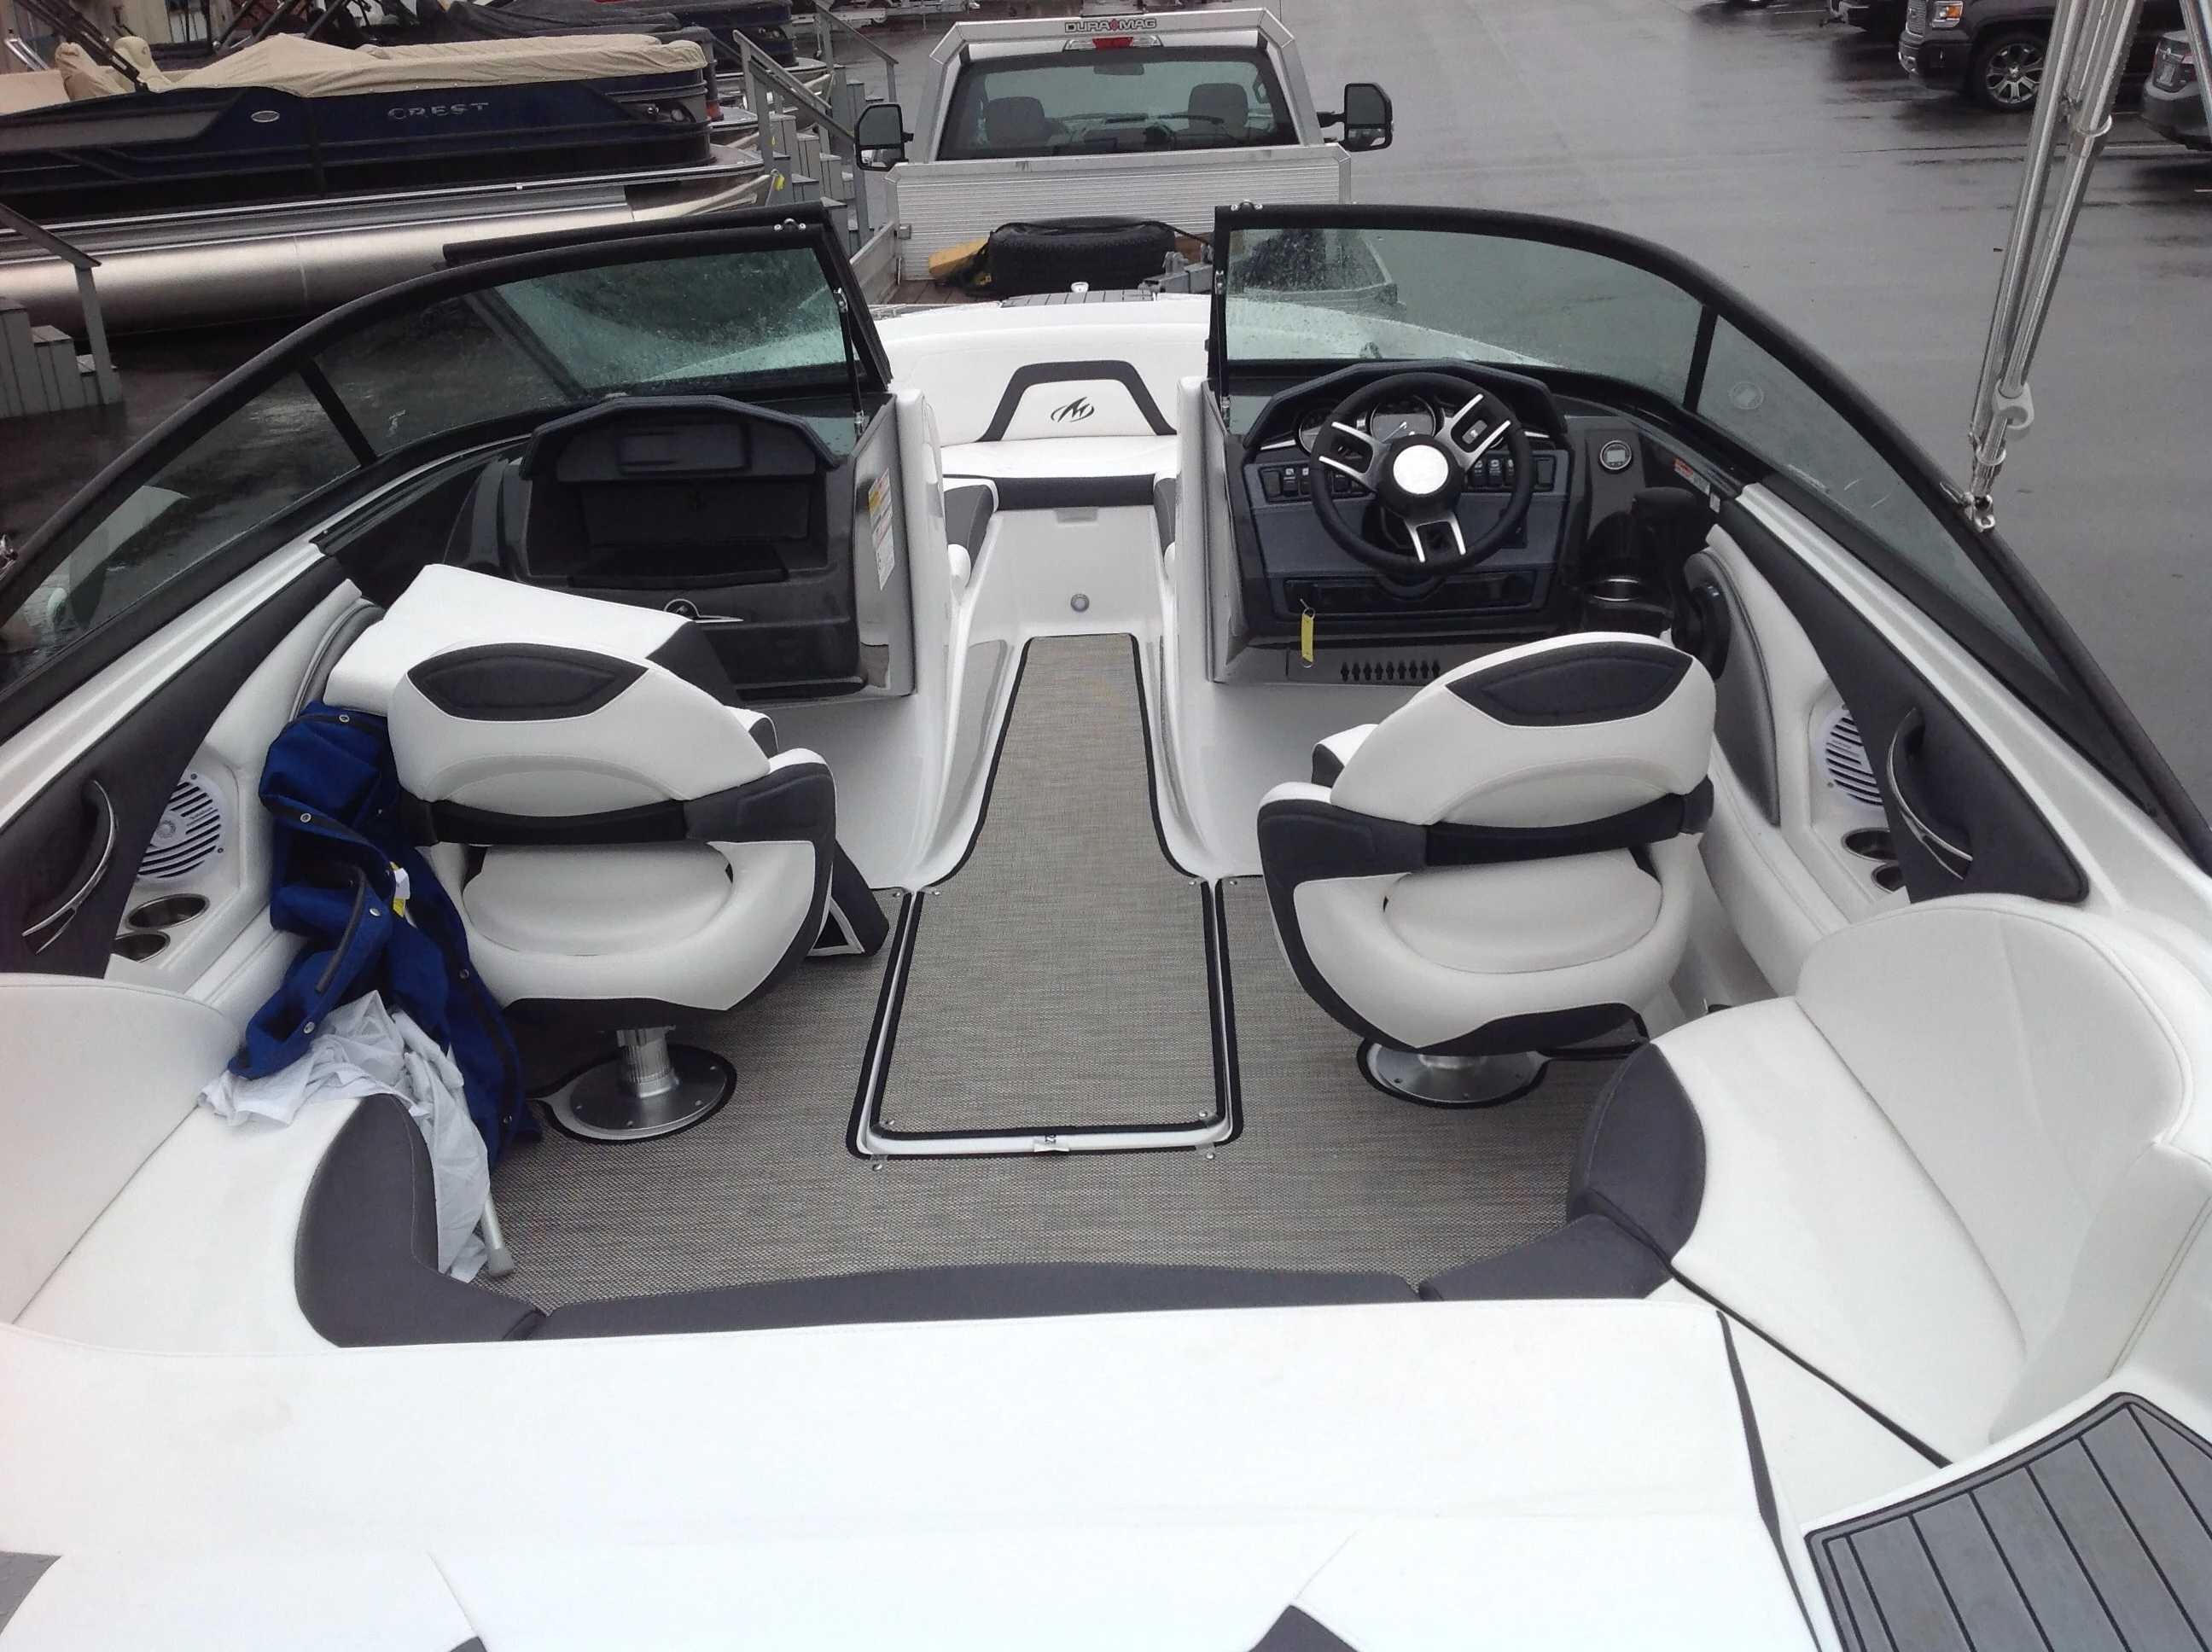 2021 Monterey boat for sale, model of the boat is 224FS & Image # 11 of 11